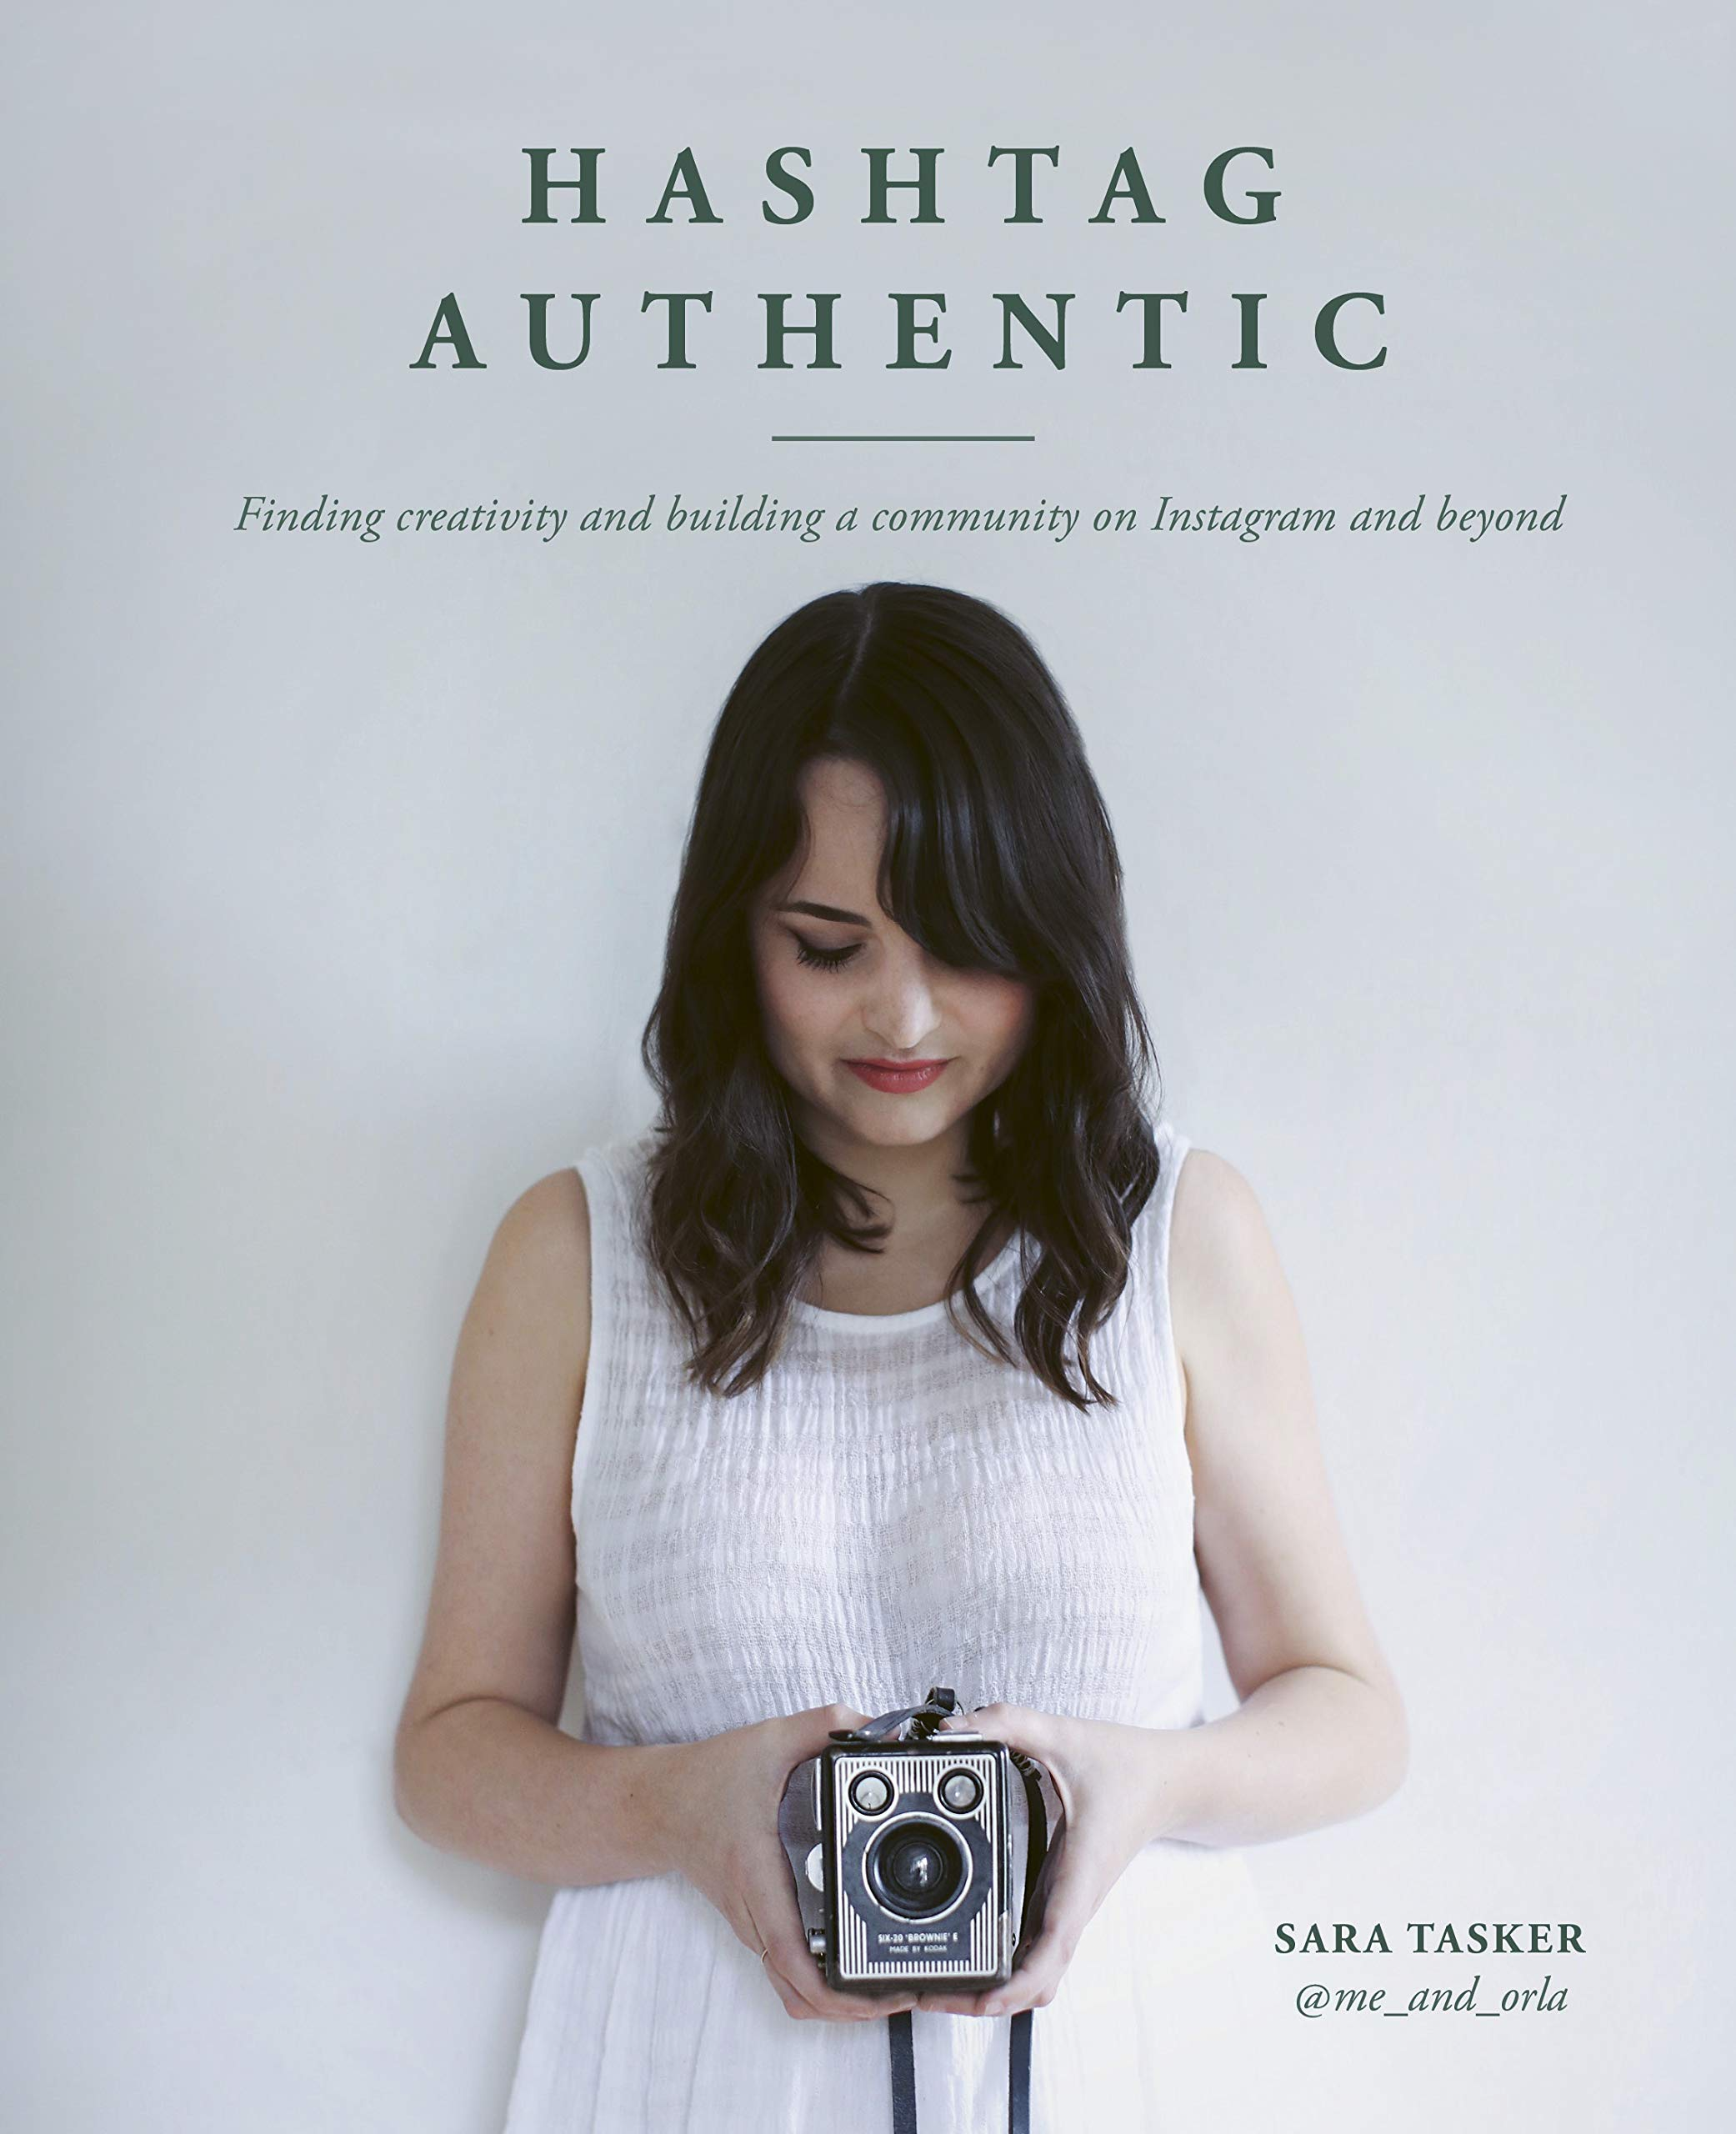 Image OfHashtag Authentic: Finding Creativity And Building A Community On Instagram And Beyond